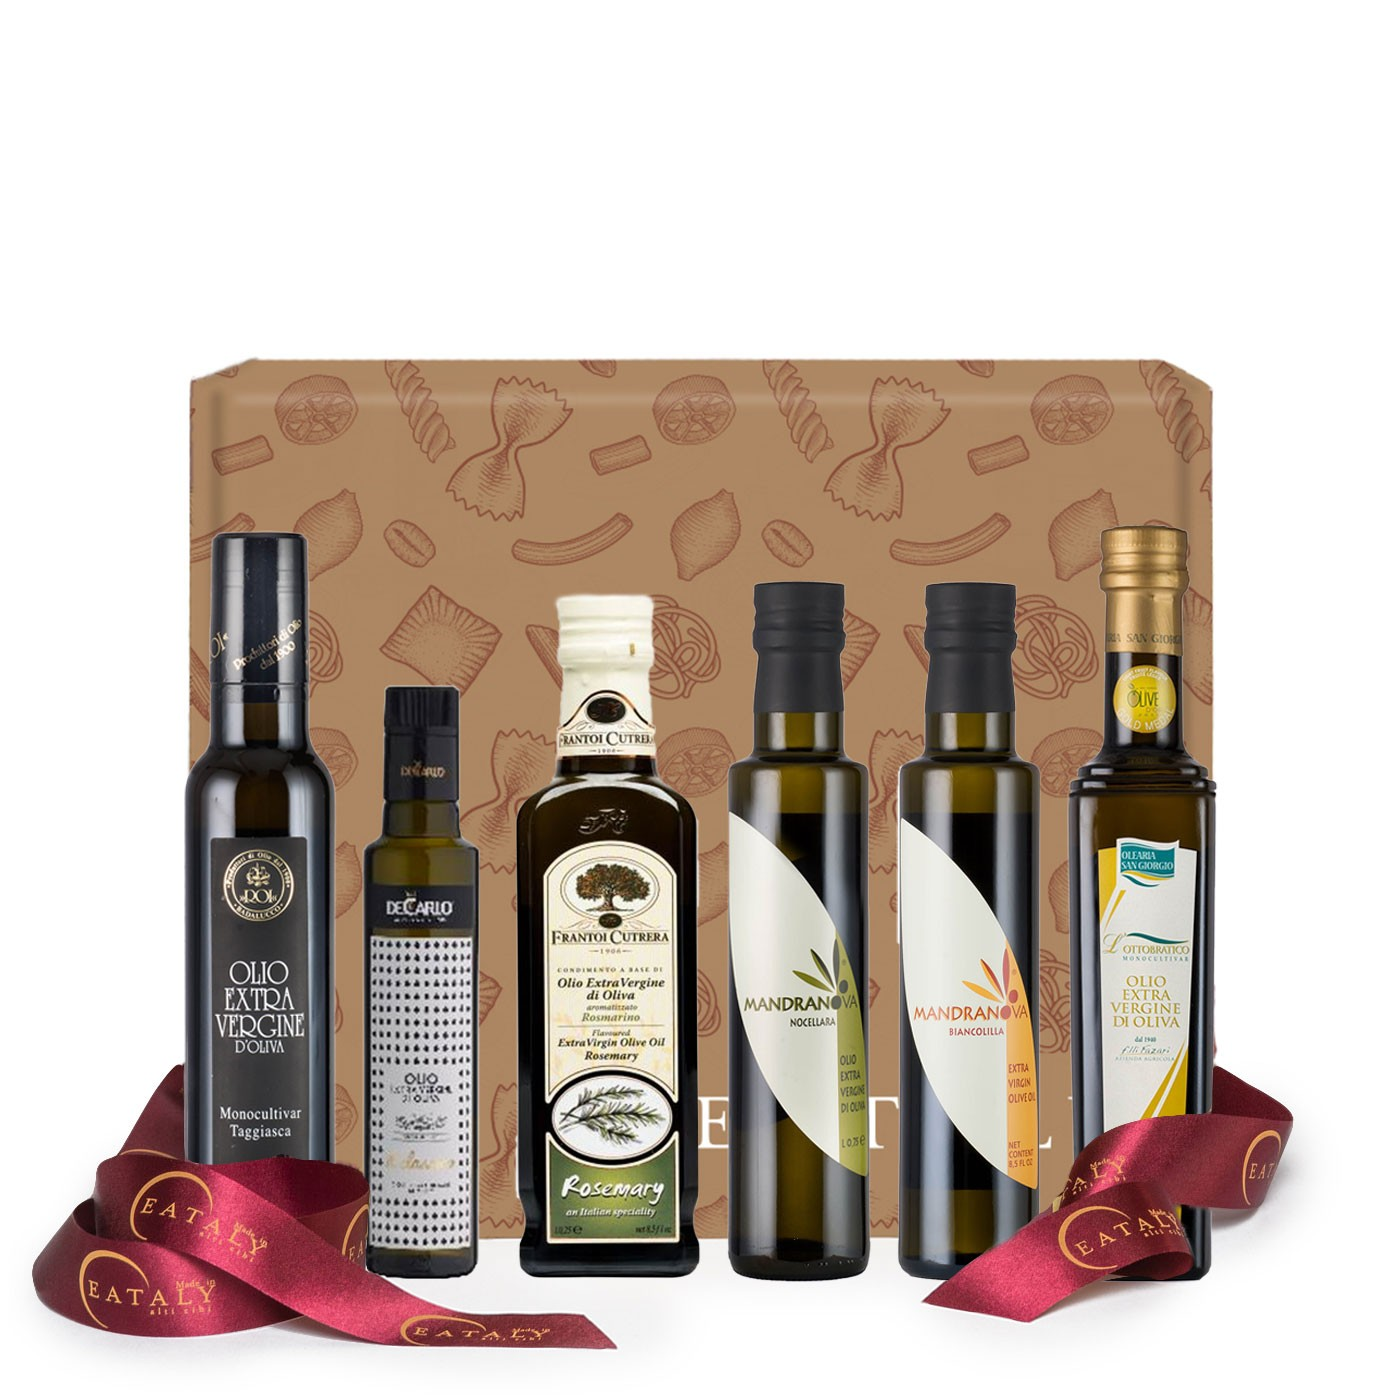 All the Flavors of Extra Virgin Olive Oil